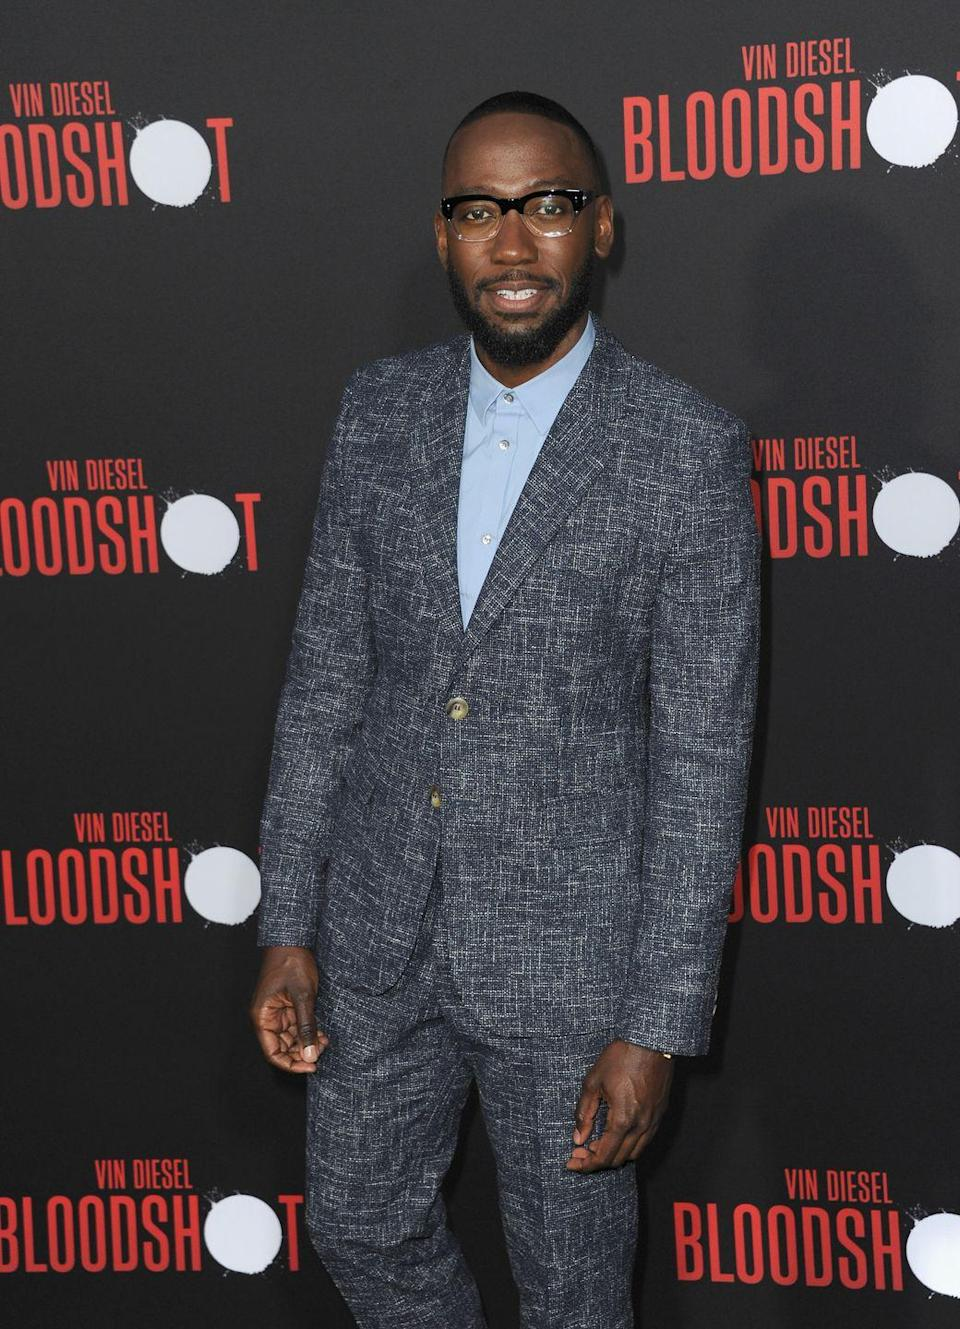 """<p>The <em>New Girl</em> star might be making jokes for a living, but his home workout is all business. """"Make sure when you're at home, use this time to keep your body active, and keep your mind even more active,"""" he told <em><a href=""""https://www.menshealth.com/fitness/a32868489/lamorne-morris-home-workout/"""" rel=""""nofollow noopener"""" target=""""_blank"""" data-ylk=""""slk:Men's Health"""" class=""""link rapid-noclick-resp"""">Men's Health</a></em>. </p><p><a class=""""link rapid-noclick-resp"""" href=""""https://www.youtube.com/watch?v=jCjEF3X3bzs&t=28s"""" rel=""""nofollow noopener"""" target=""""_blank"""" data-ylk=""""slk:Watch here"""">Watch here</a></p>"""